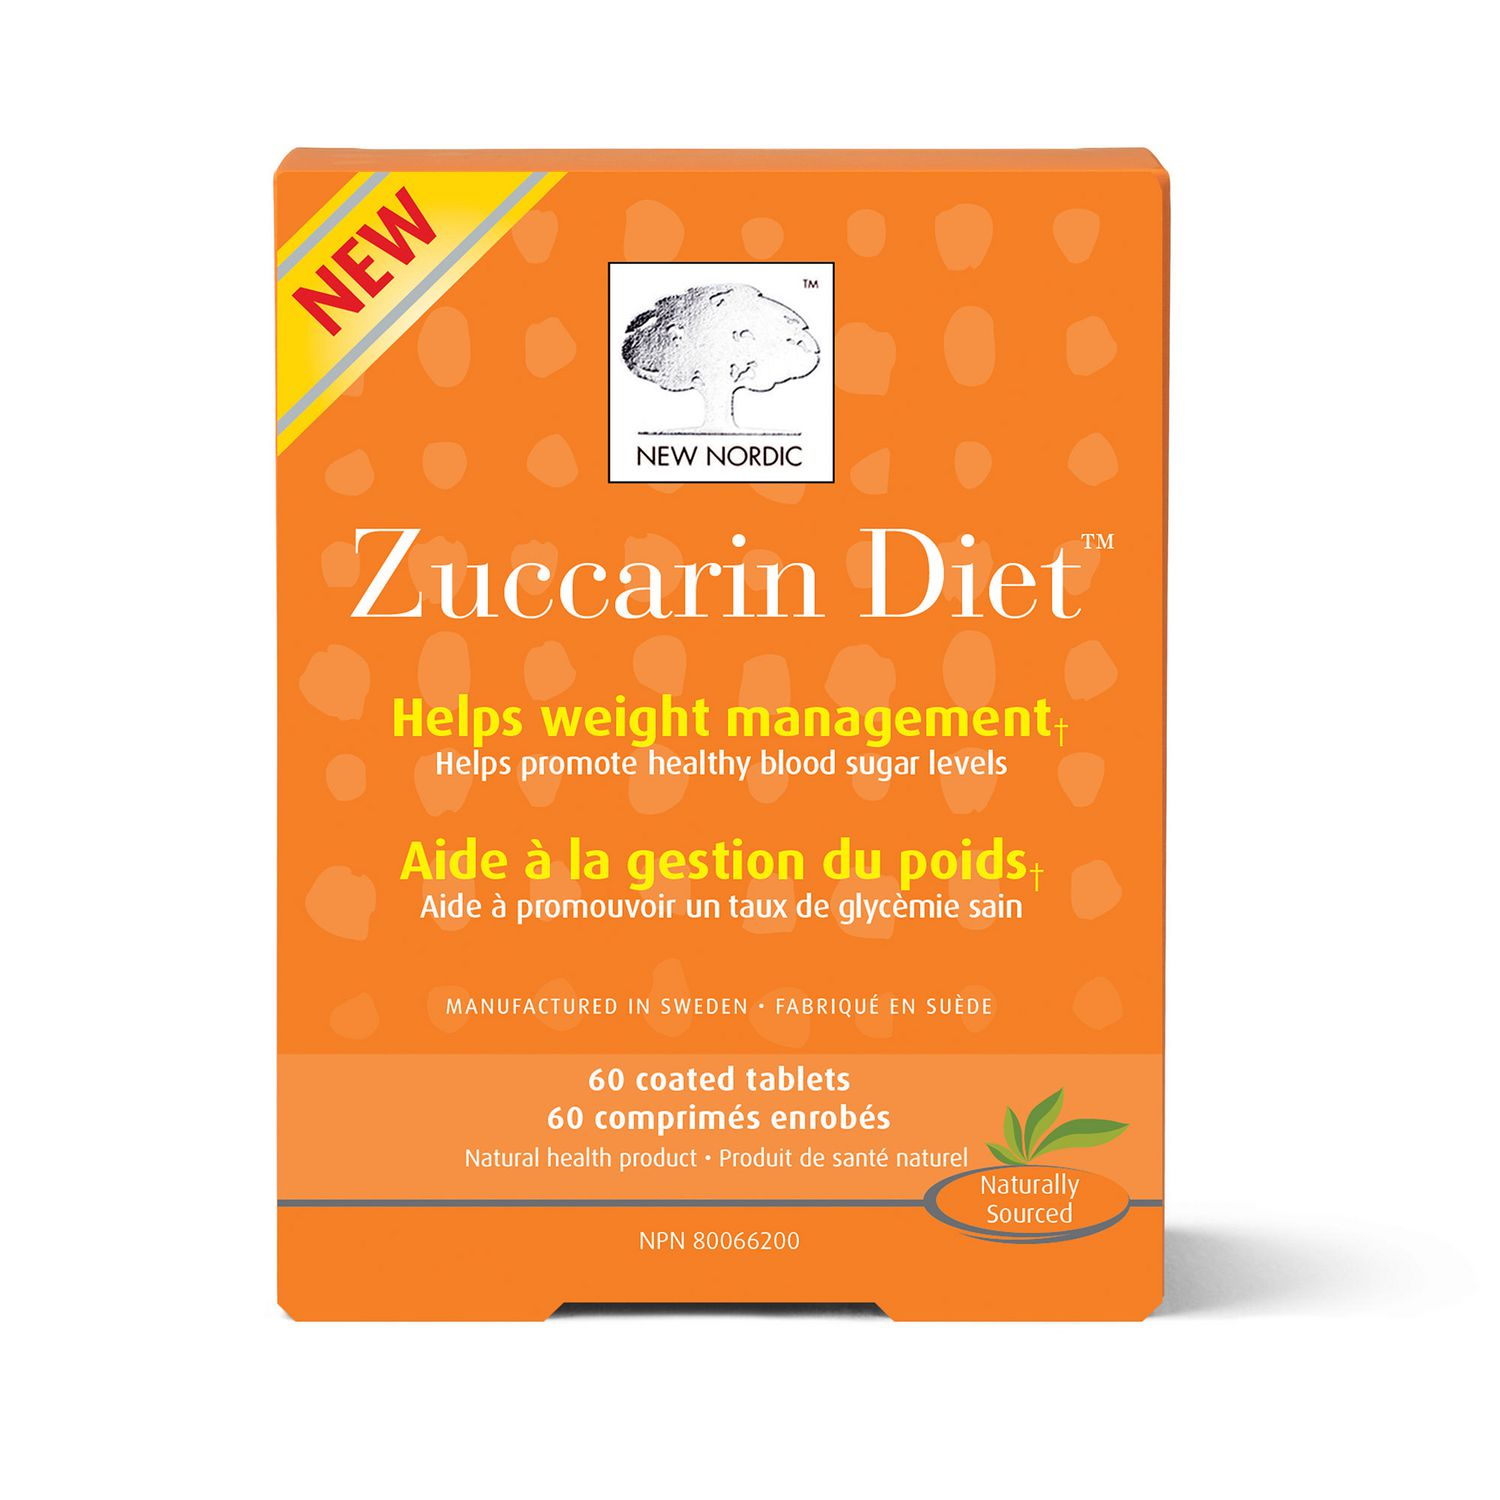 New Nordic Zuccarin Diet Tablets